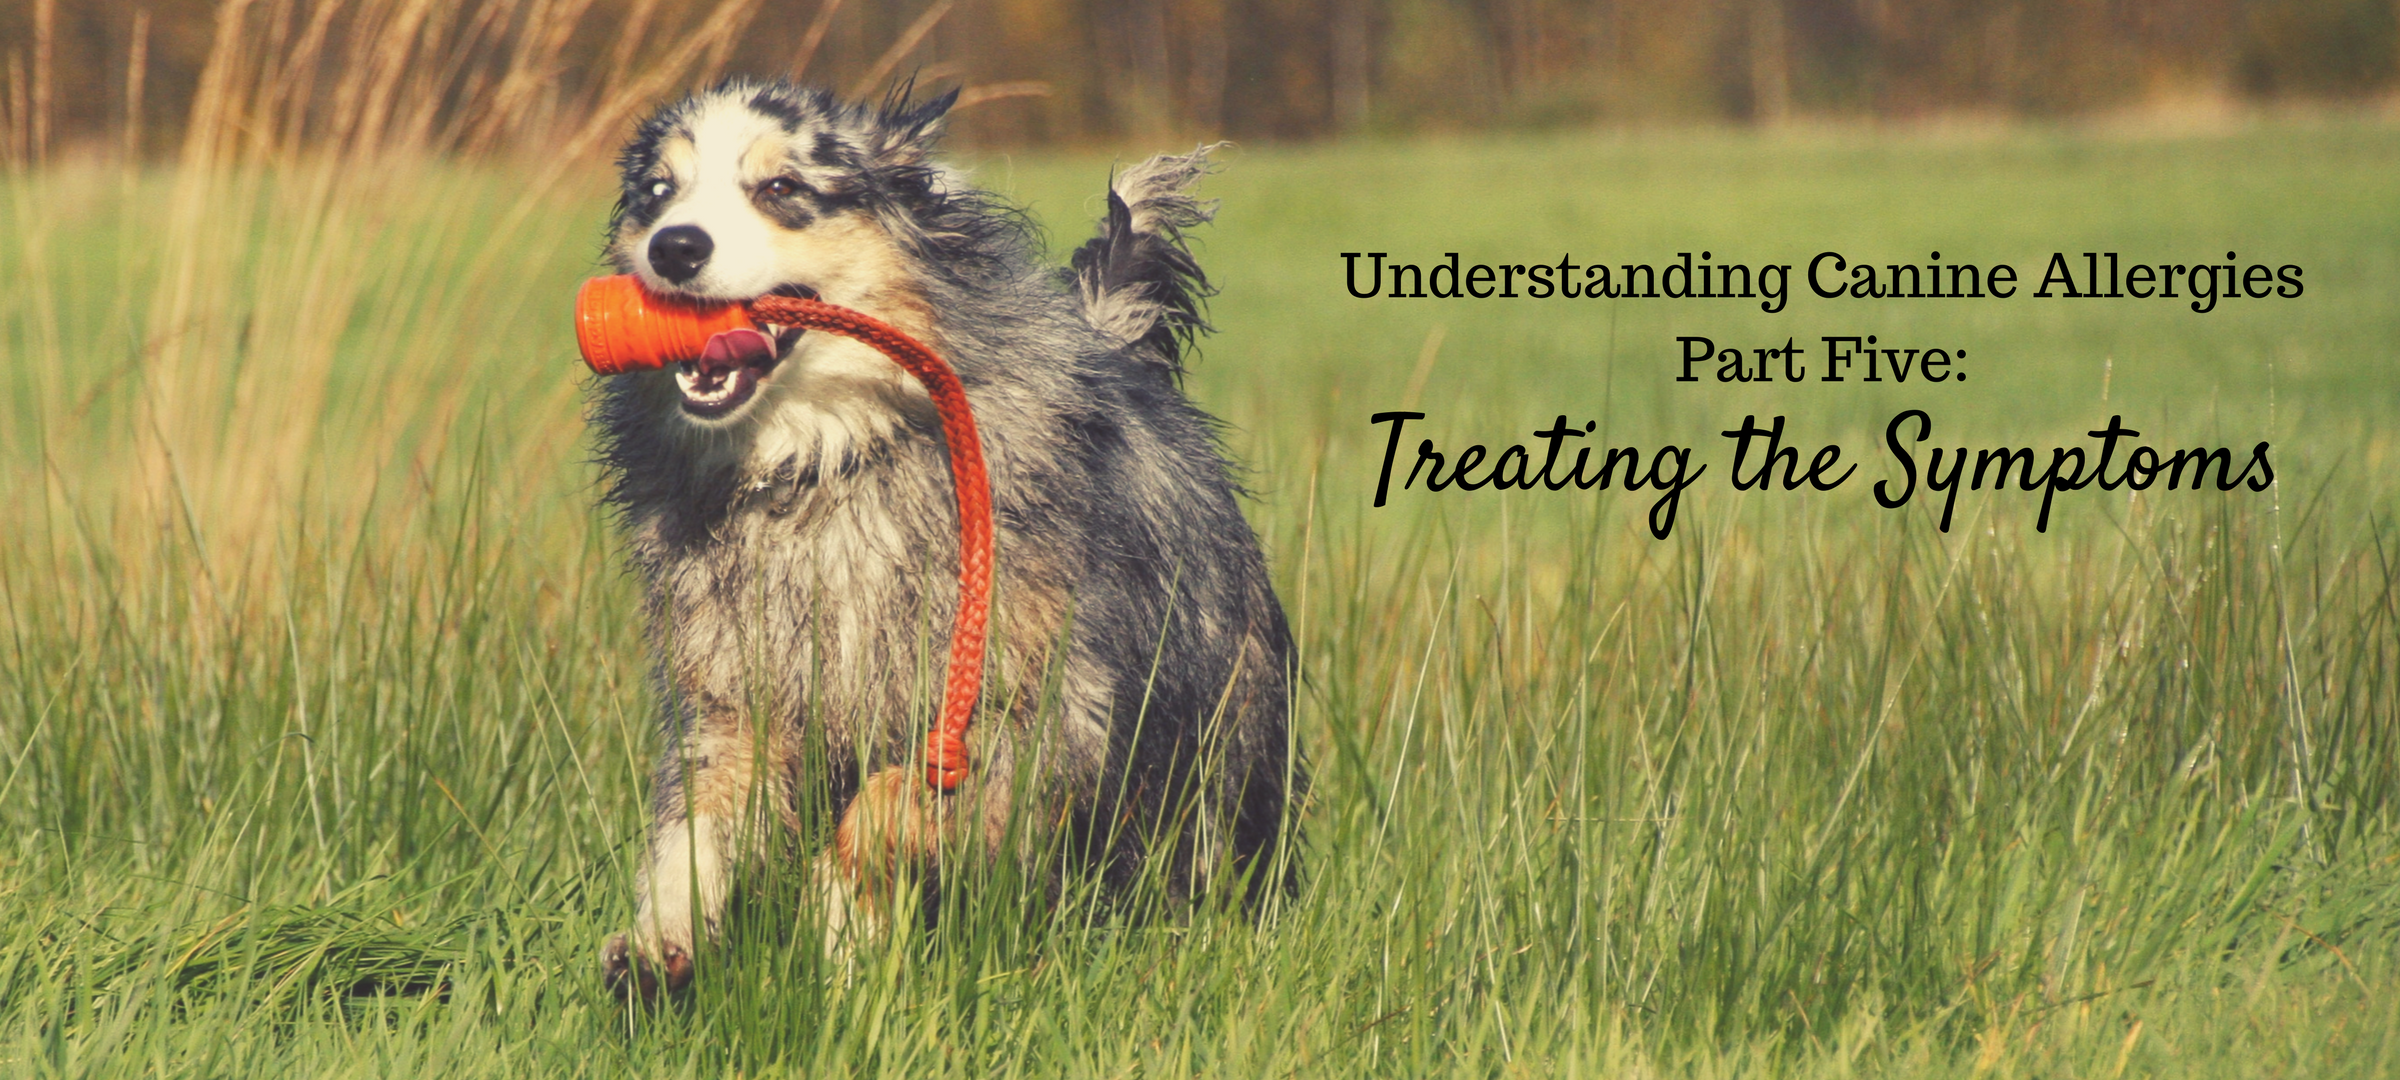 dogs, dog food, allergies, immunity, immune system, healing, diet, treatment, understanding canine allergies part five, symptoms